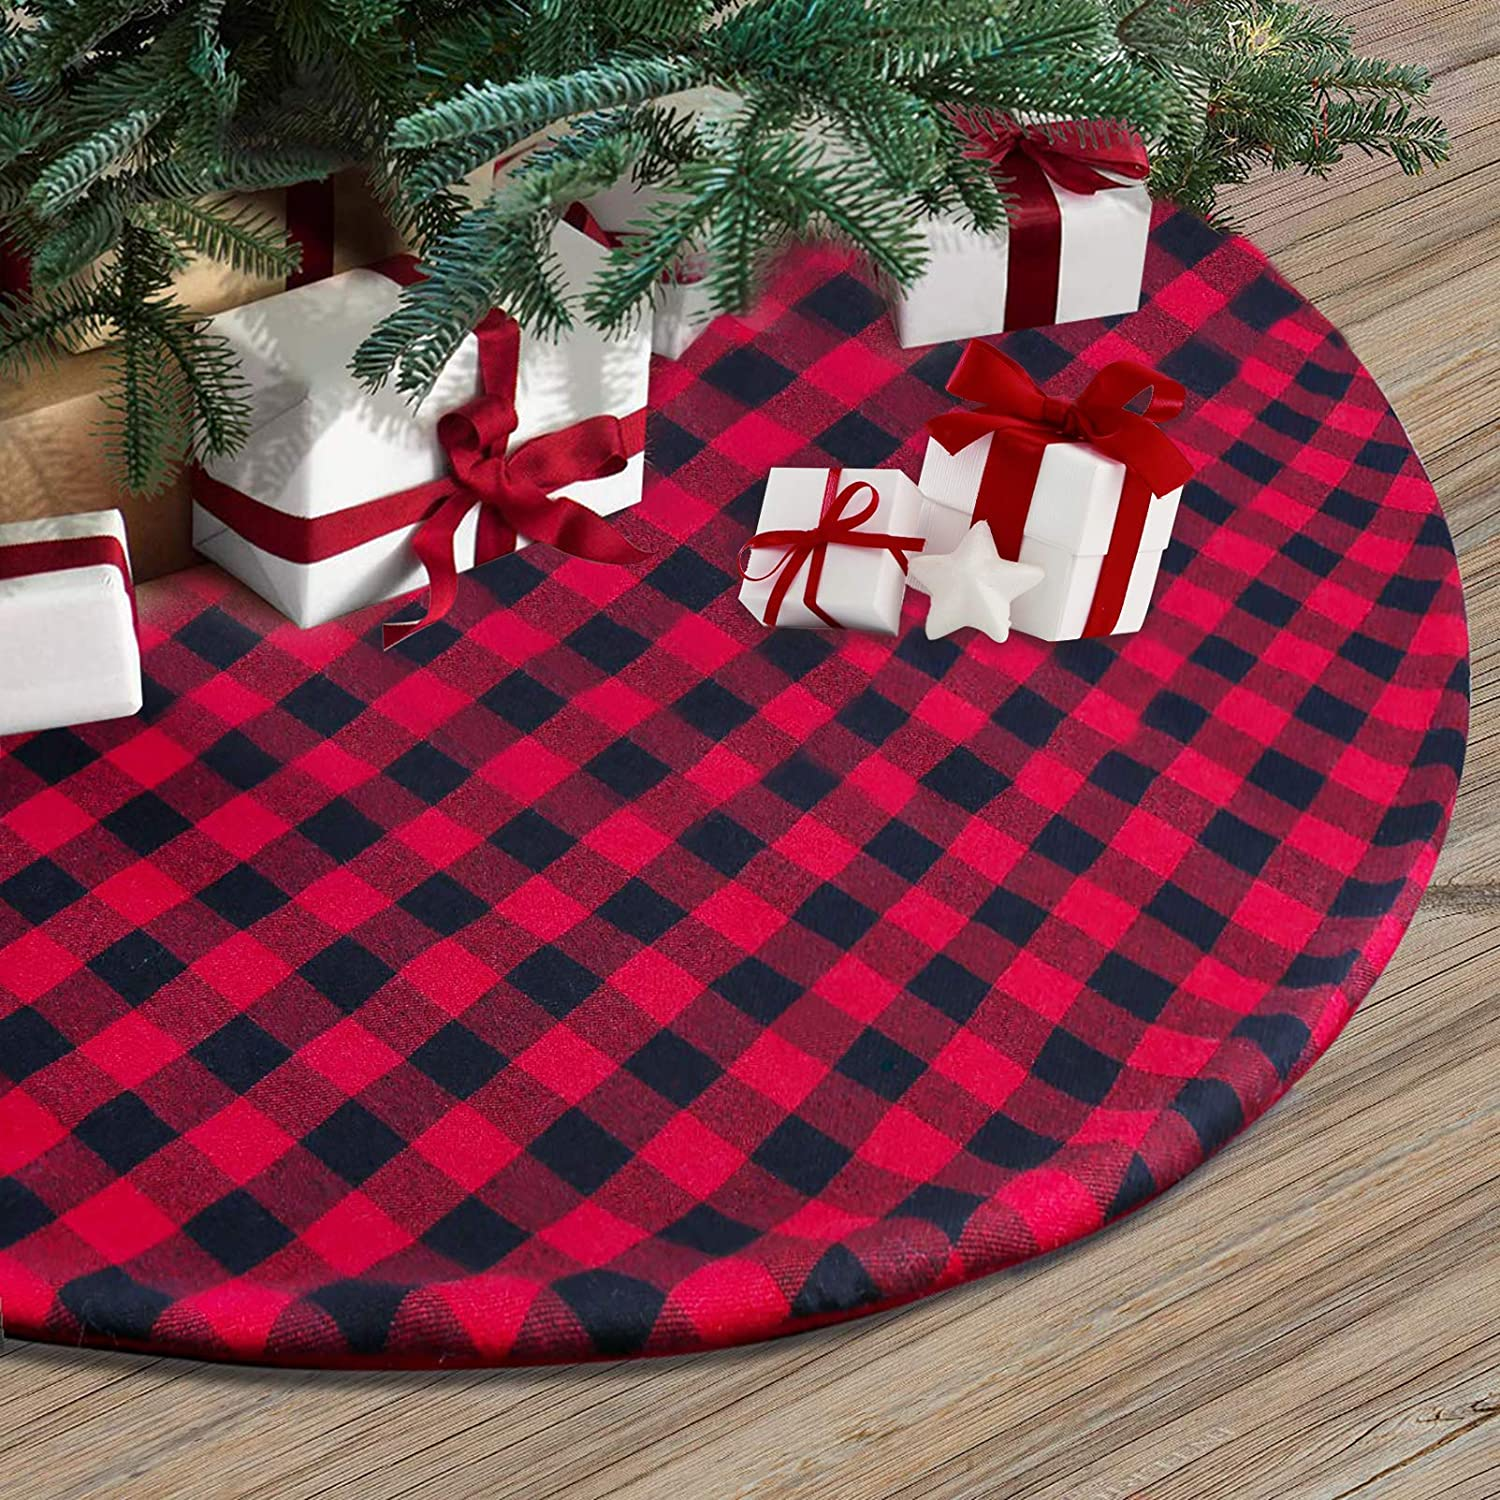 Trooer 48 Inch Christmas Tree Skirt Black and Red Buffalo Plaid Tree Skirt Christmas Decorations Double Layers Tree Skirt Ornaments for Xmas Holiday Party